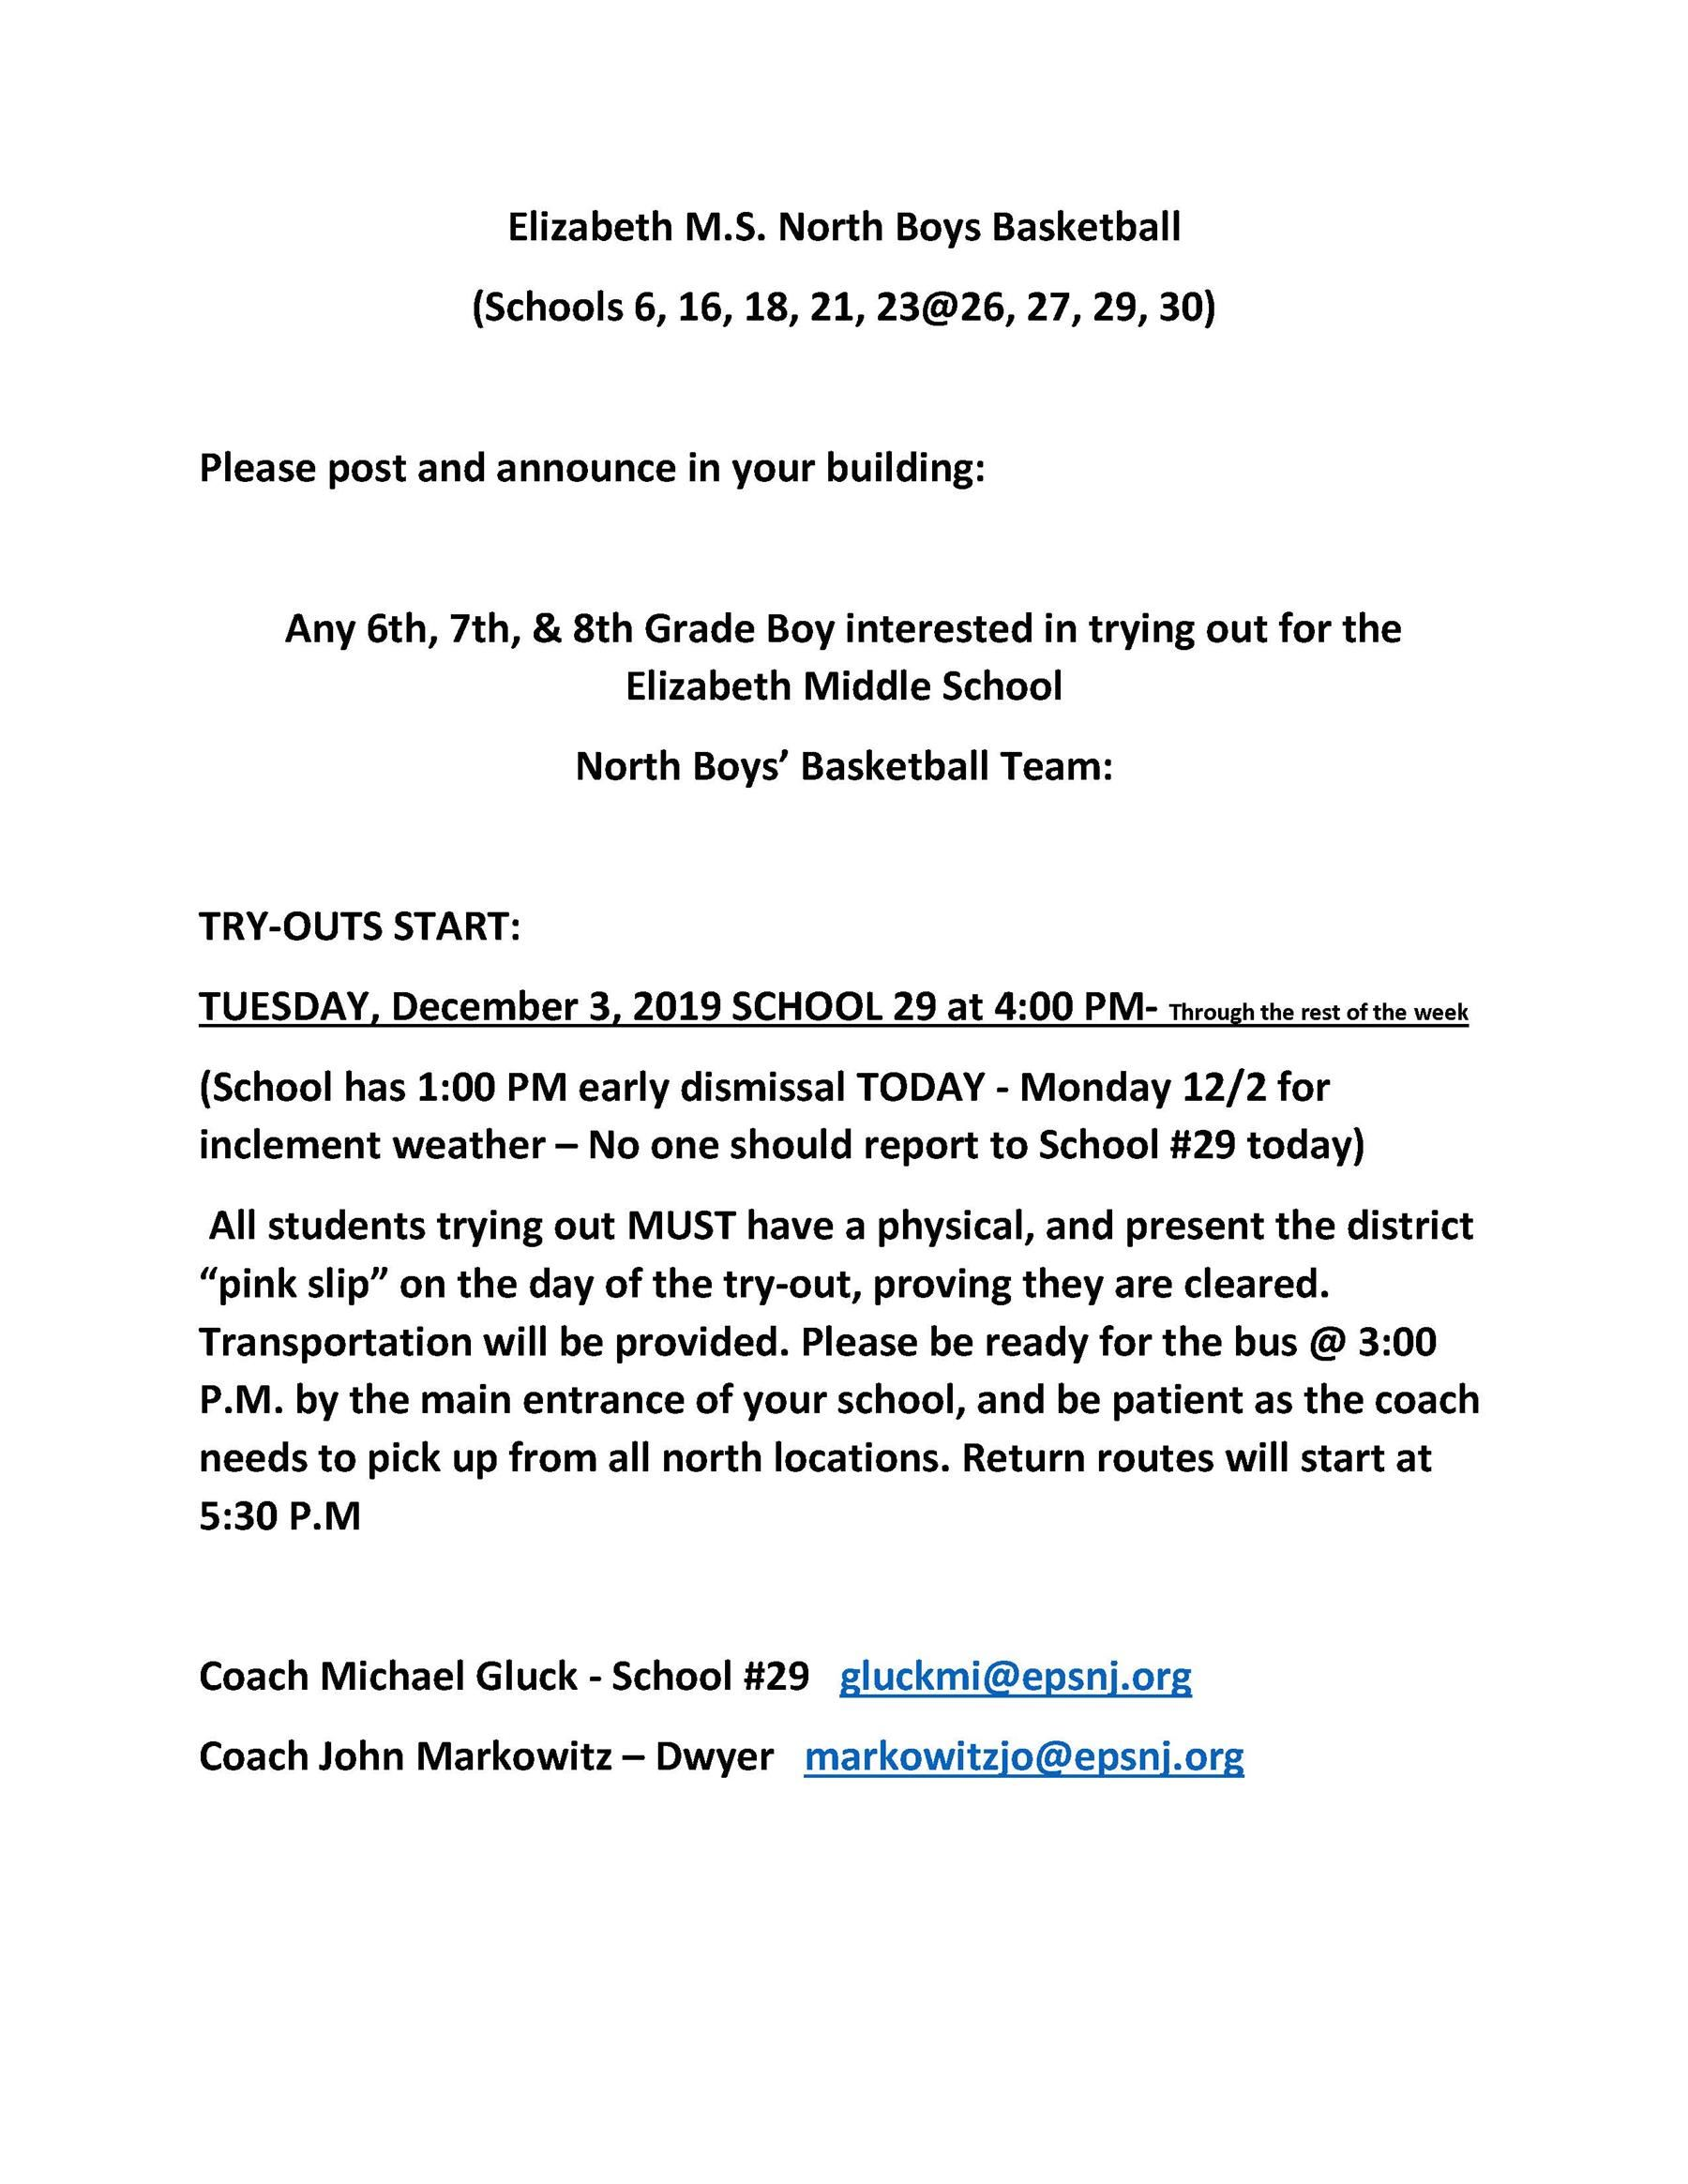 2019-2020 Winter Season - Elizabeth M.S. North Boys Basketball Tryouts